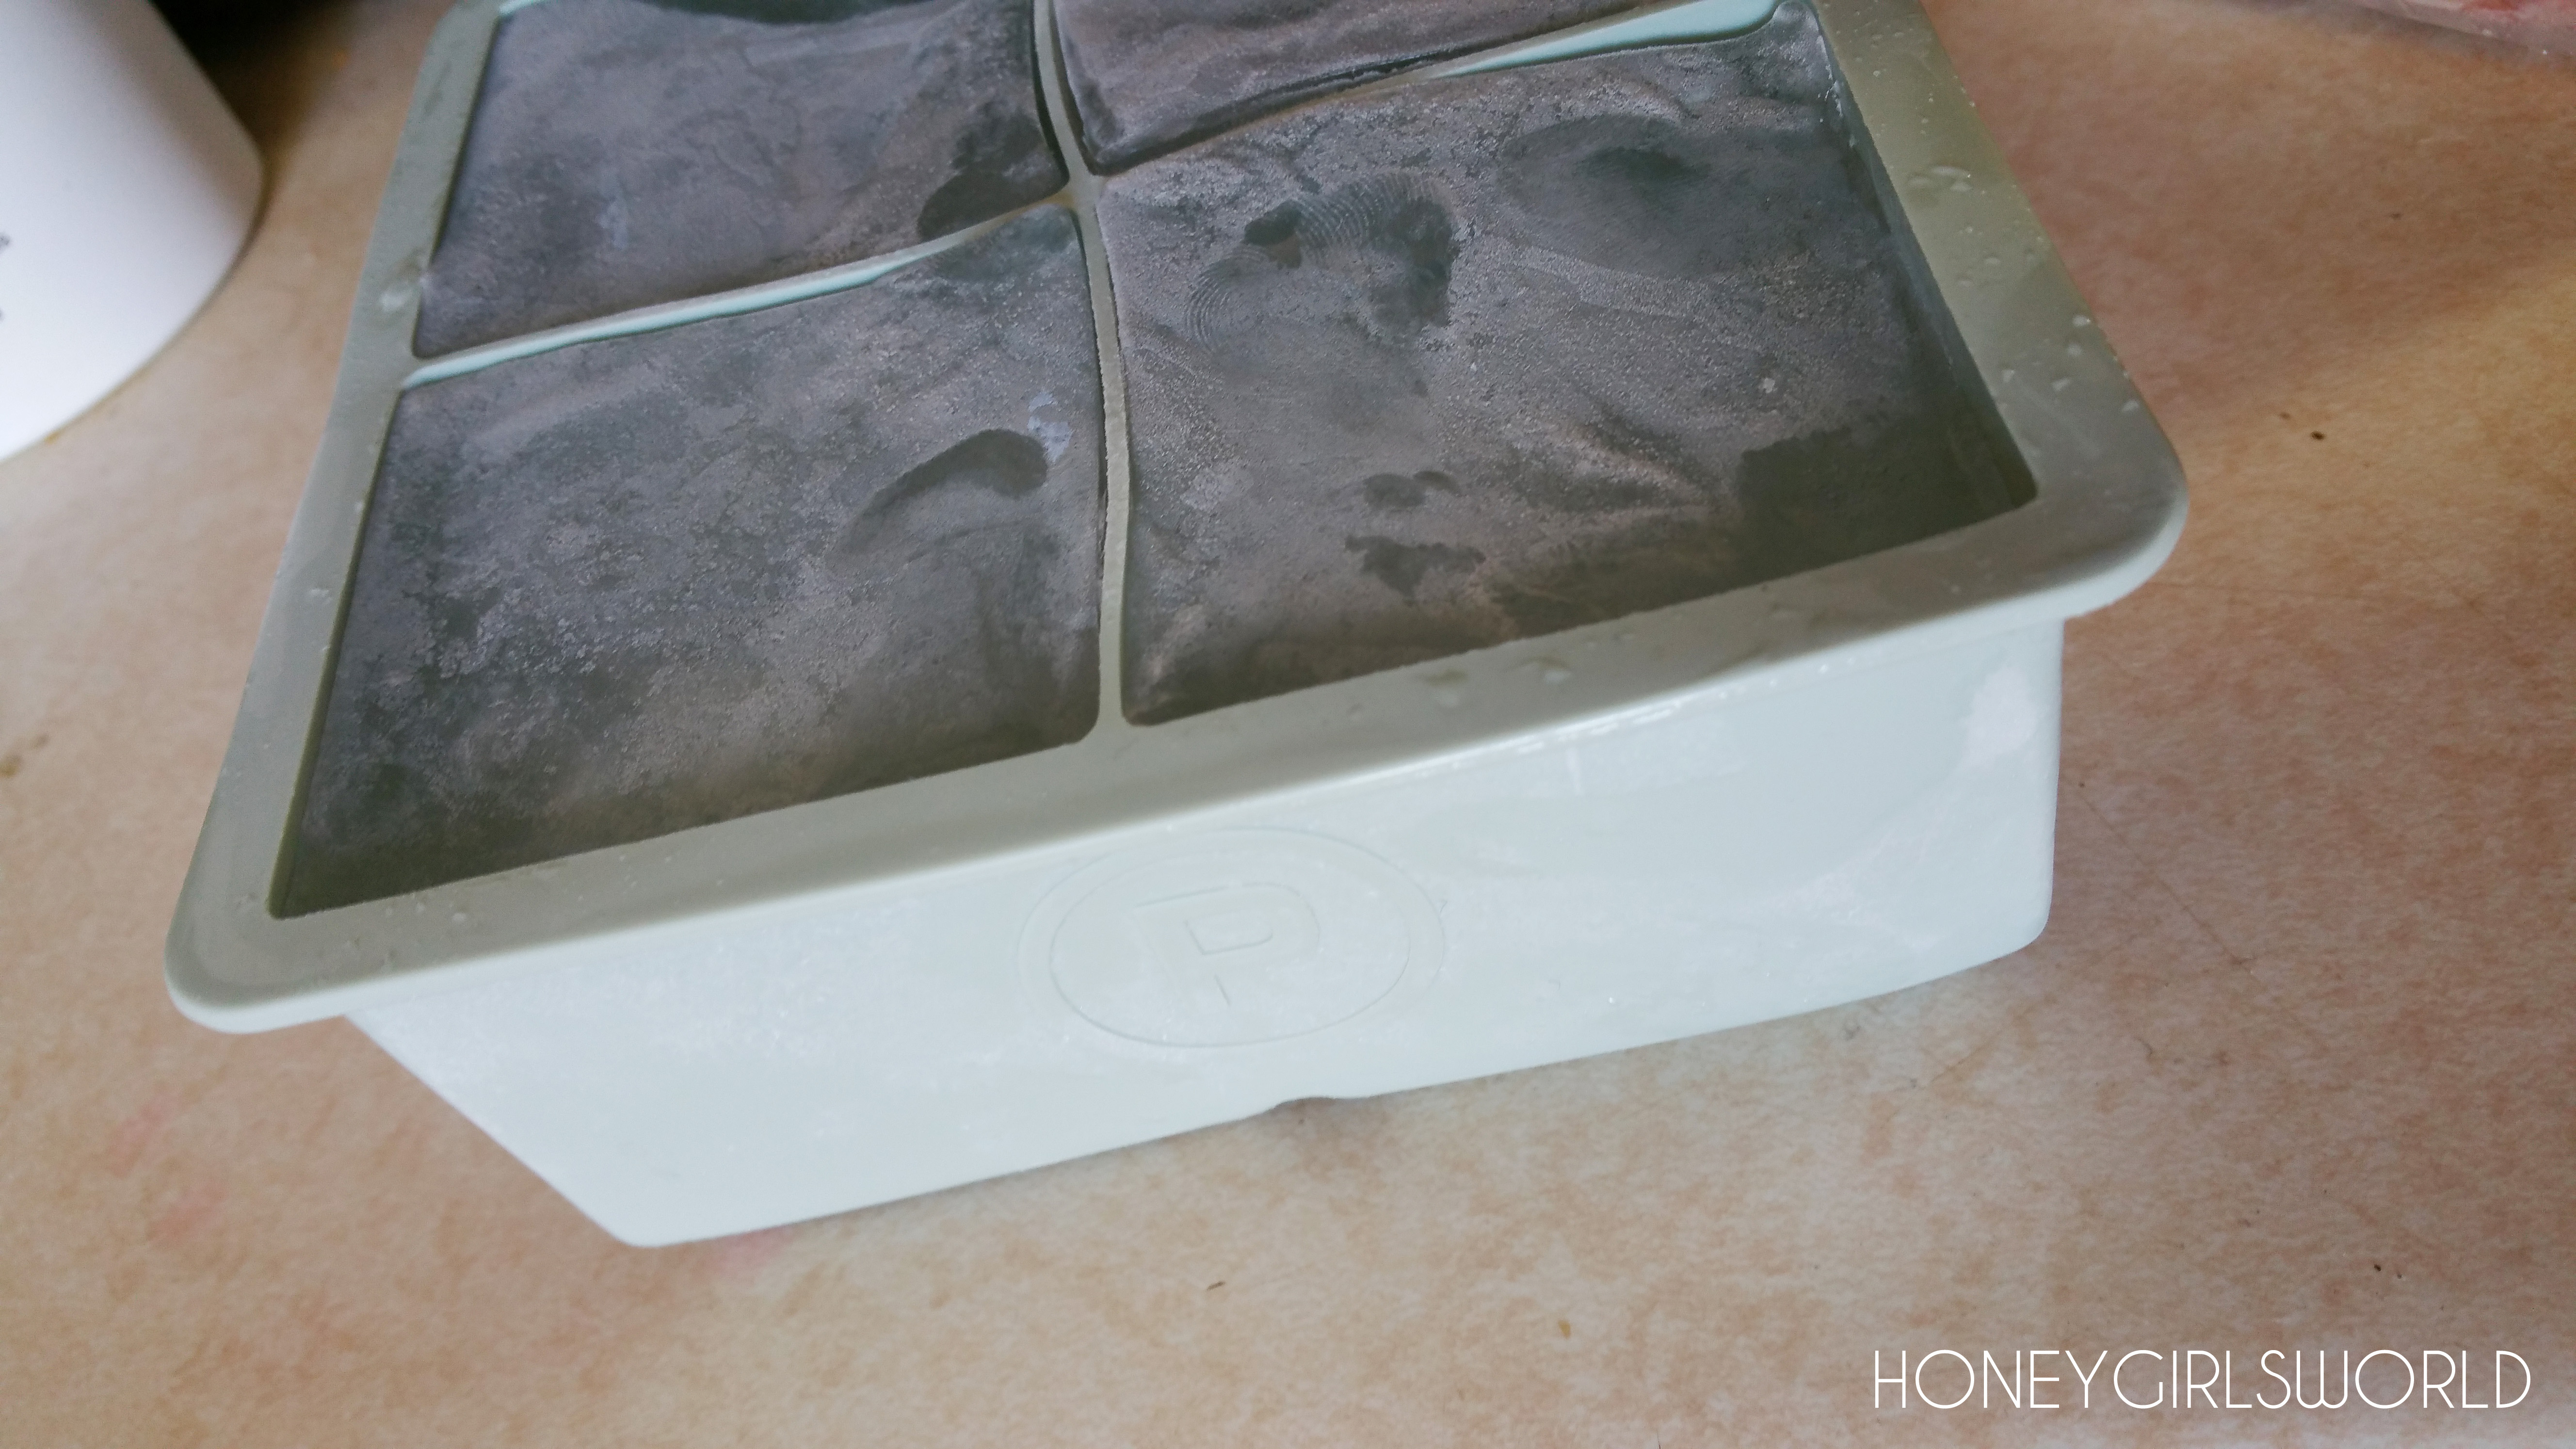 PRODUCT REVIEW - Jumbo Silicone Ice Cube Molds